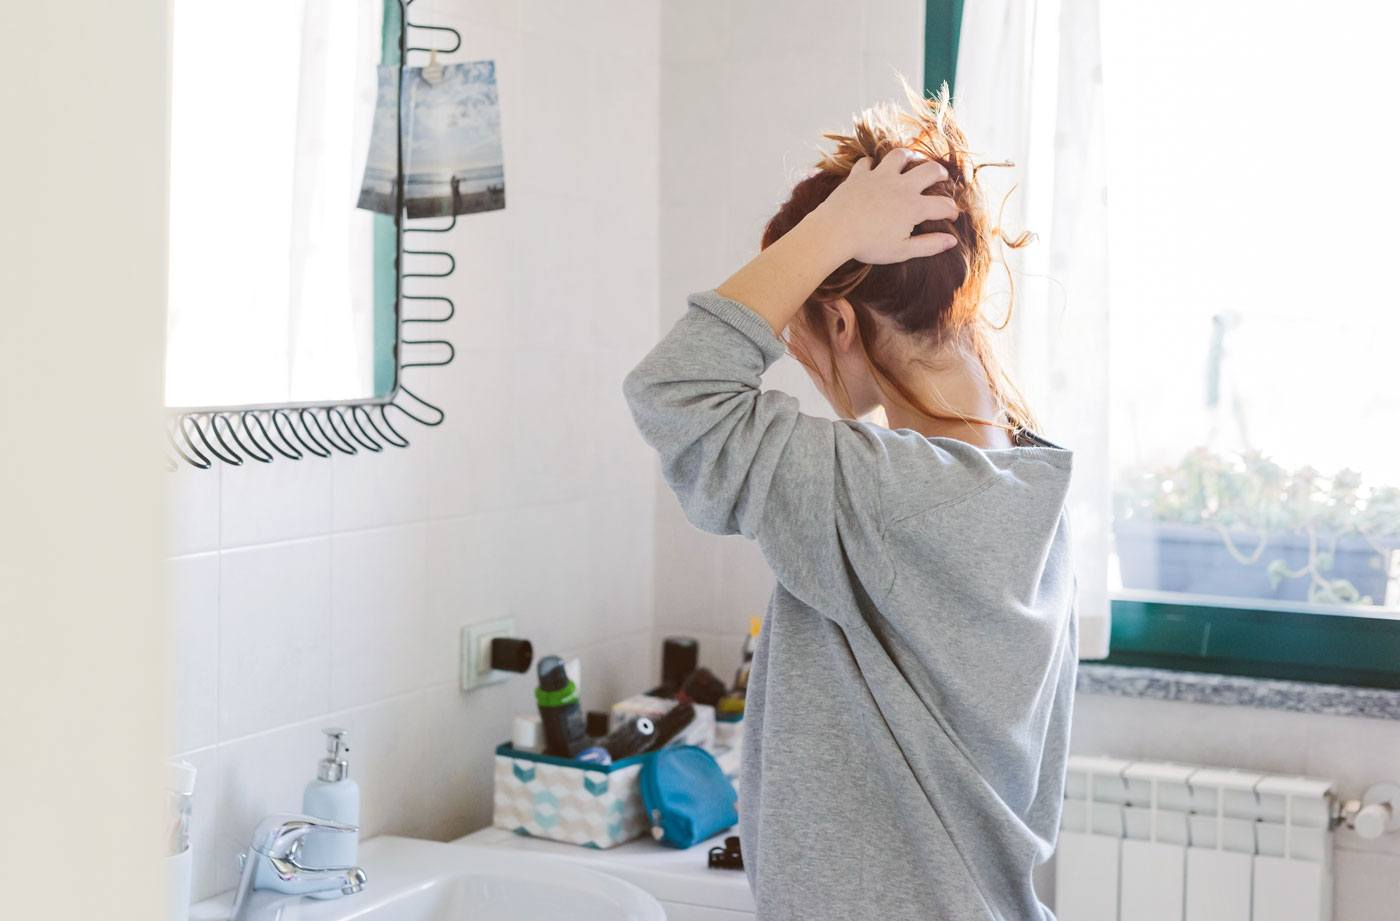 Thumbnail for A Dermatologist Weighs in on How Long to Use That Dandruff Shampoo